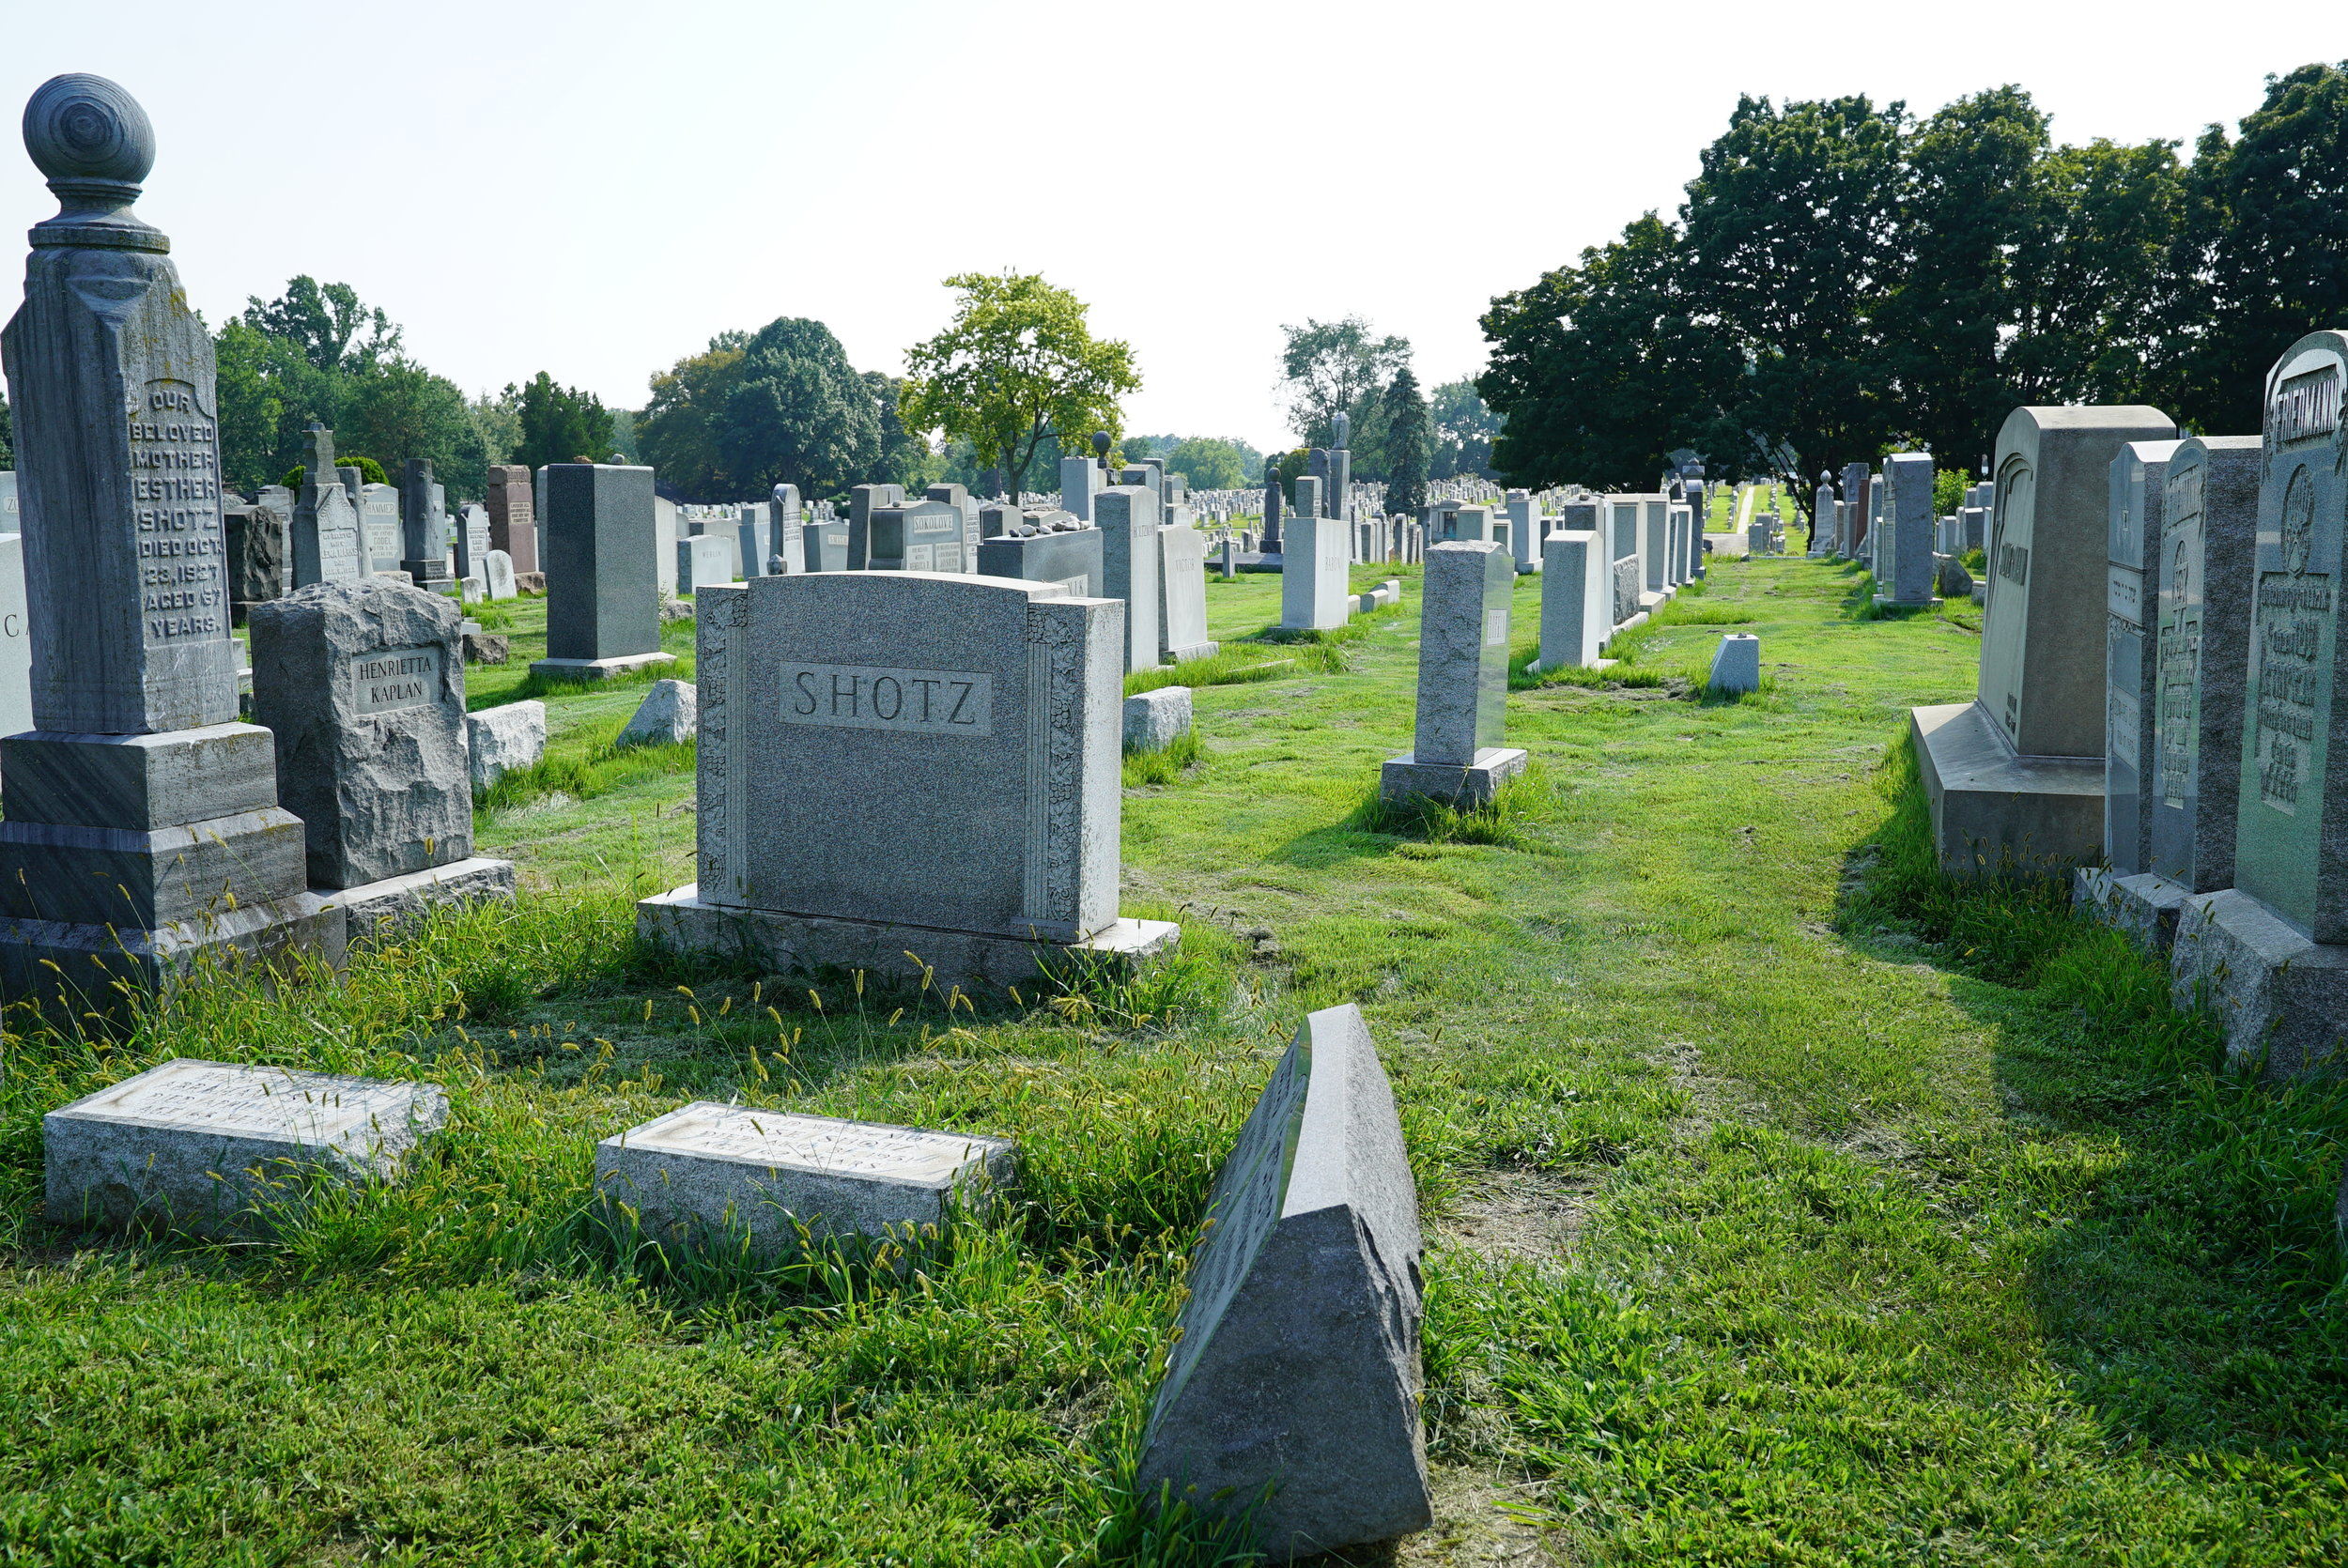 Montefiore Cemetery. Jenkintown, Pennsylvania. A grounds crew was at work during my visit.